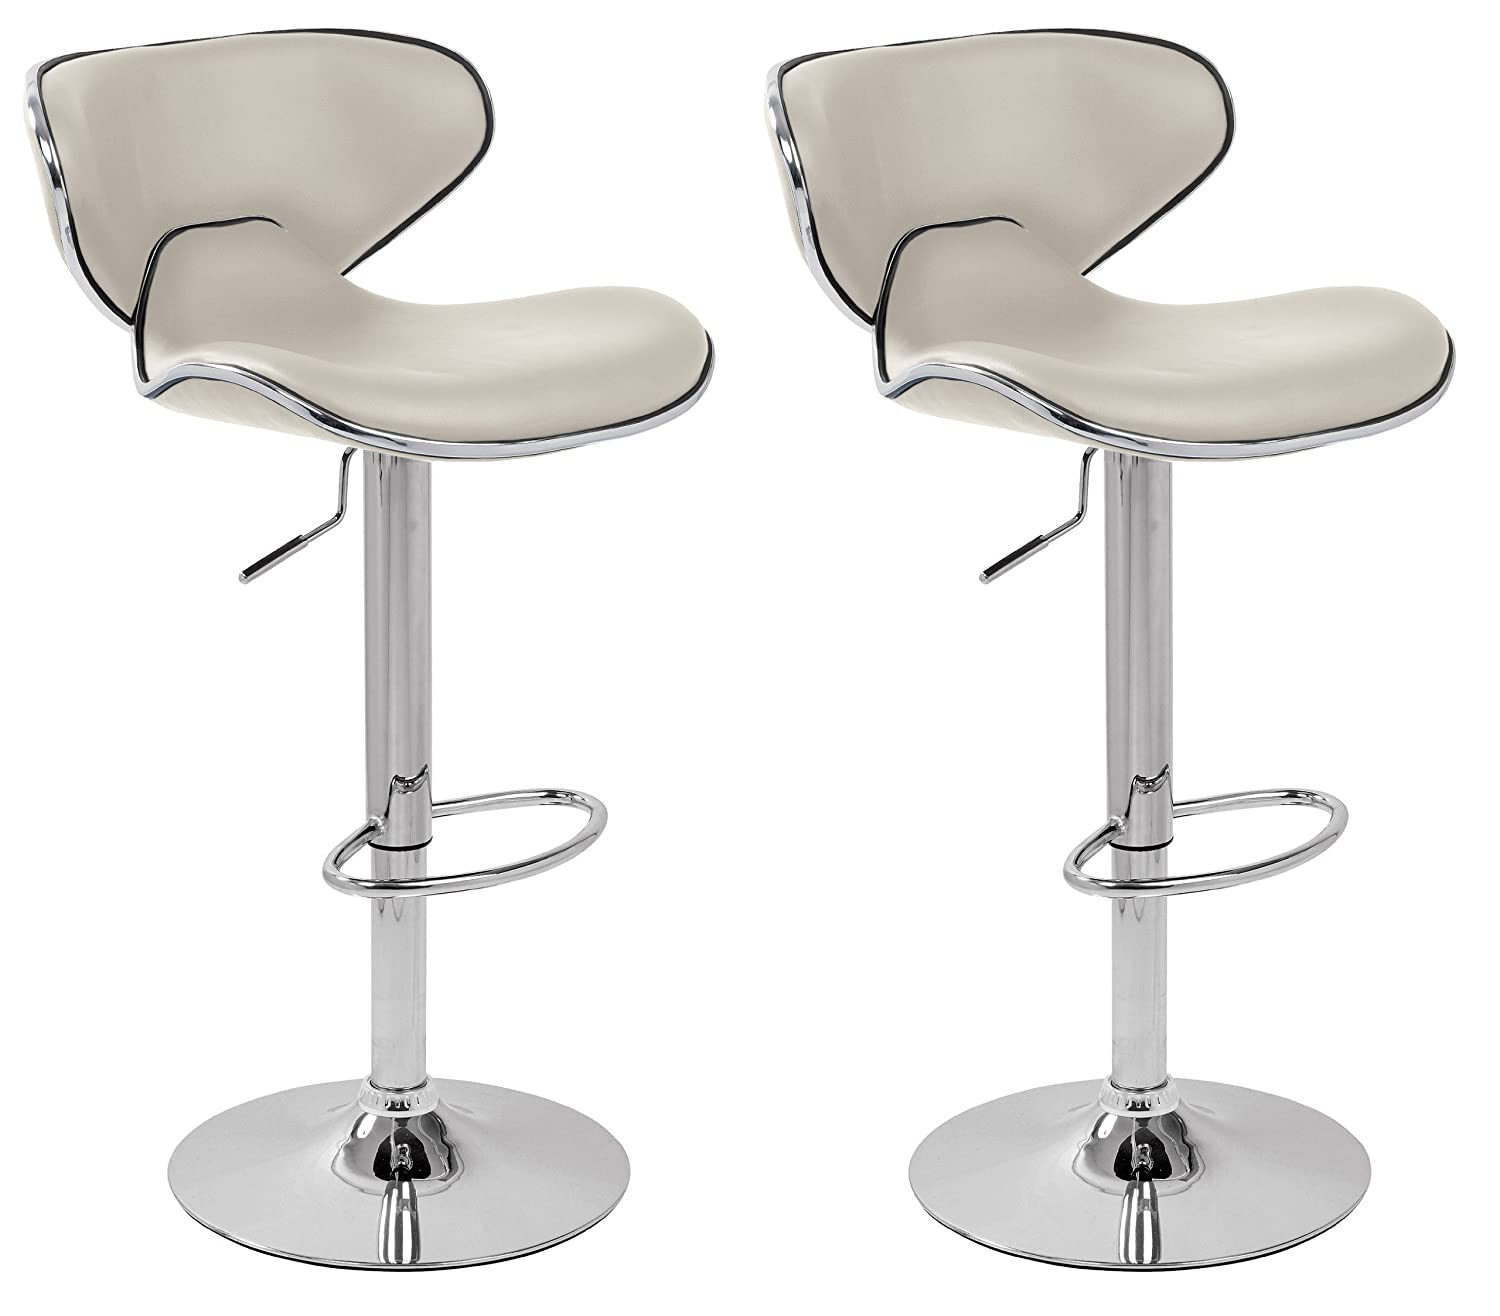 BRAND NEW PAIR OF JET WHITE FAUX LEATHER BREAKFAST KITCHEN BAR